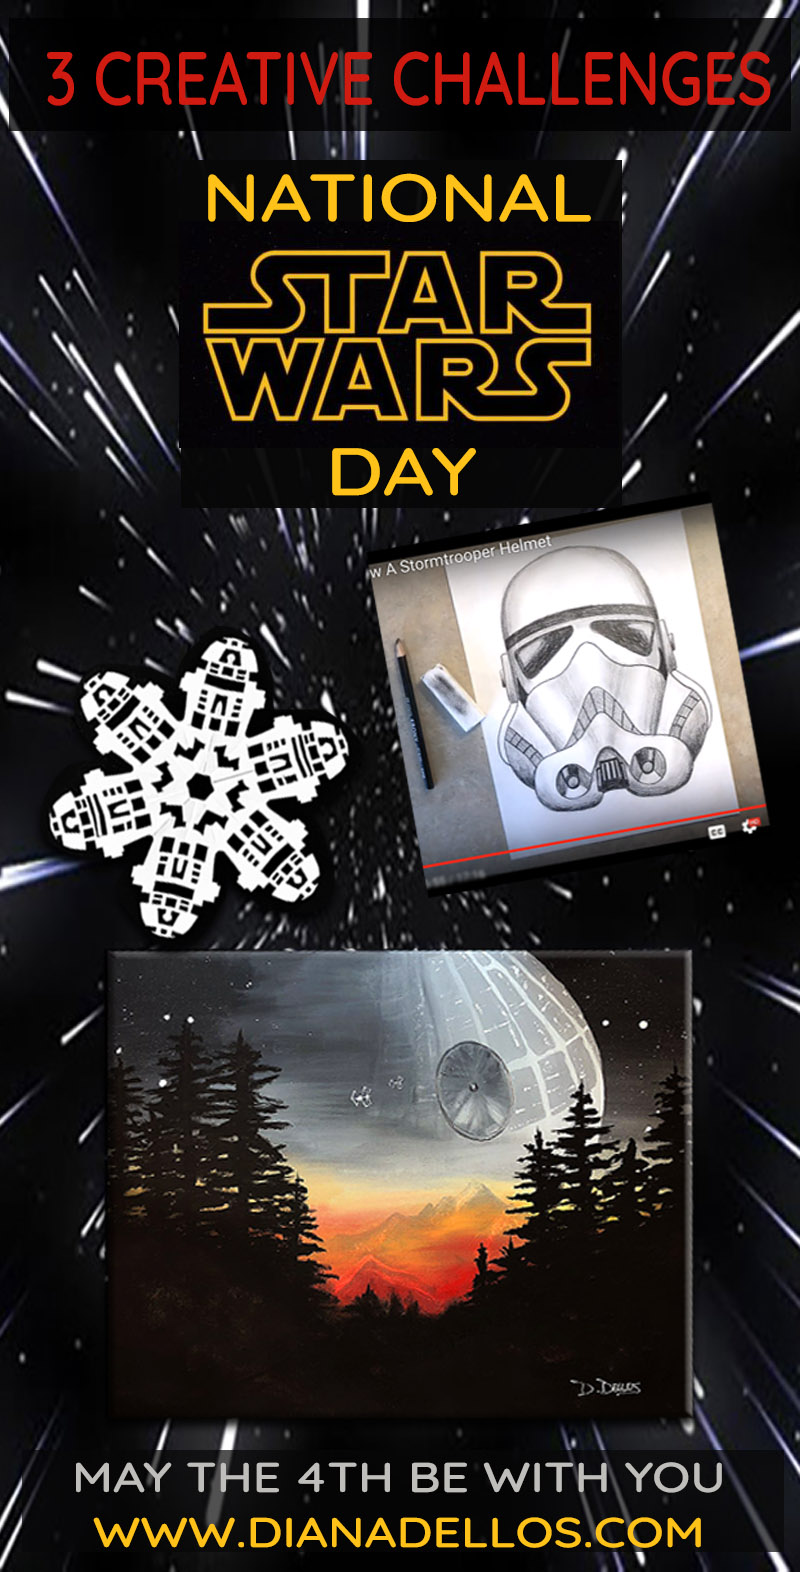 Star Wars Creative Challenge! Are you ready to be creative + have a great National Star Wars Day? Join me for 3 easy art projects with Star Wars themes. No experience necessary and anyone can do these! Video + instructions | www.dianadellos.com